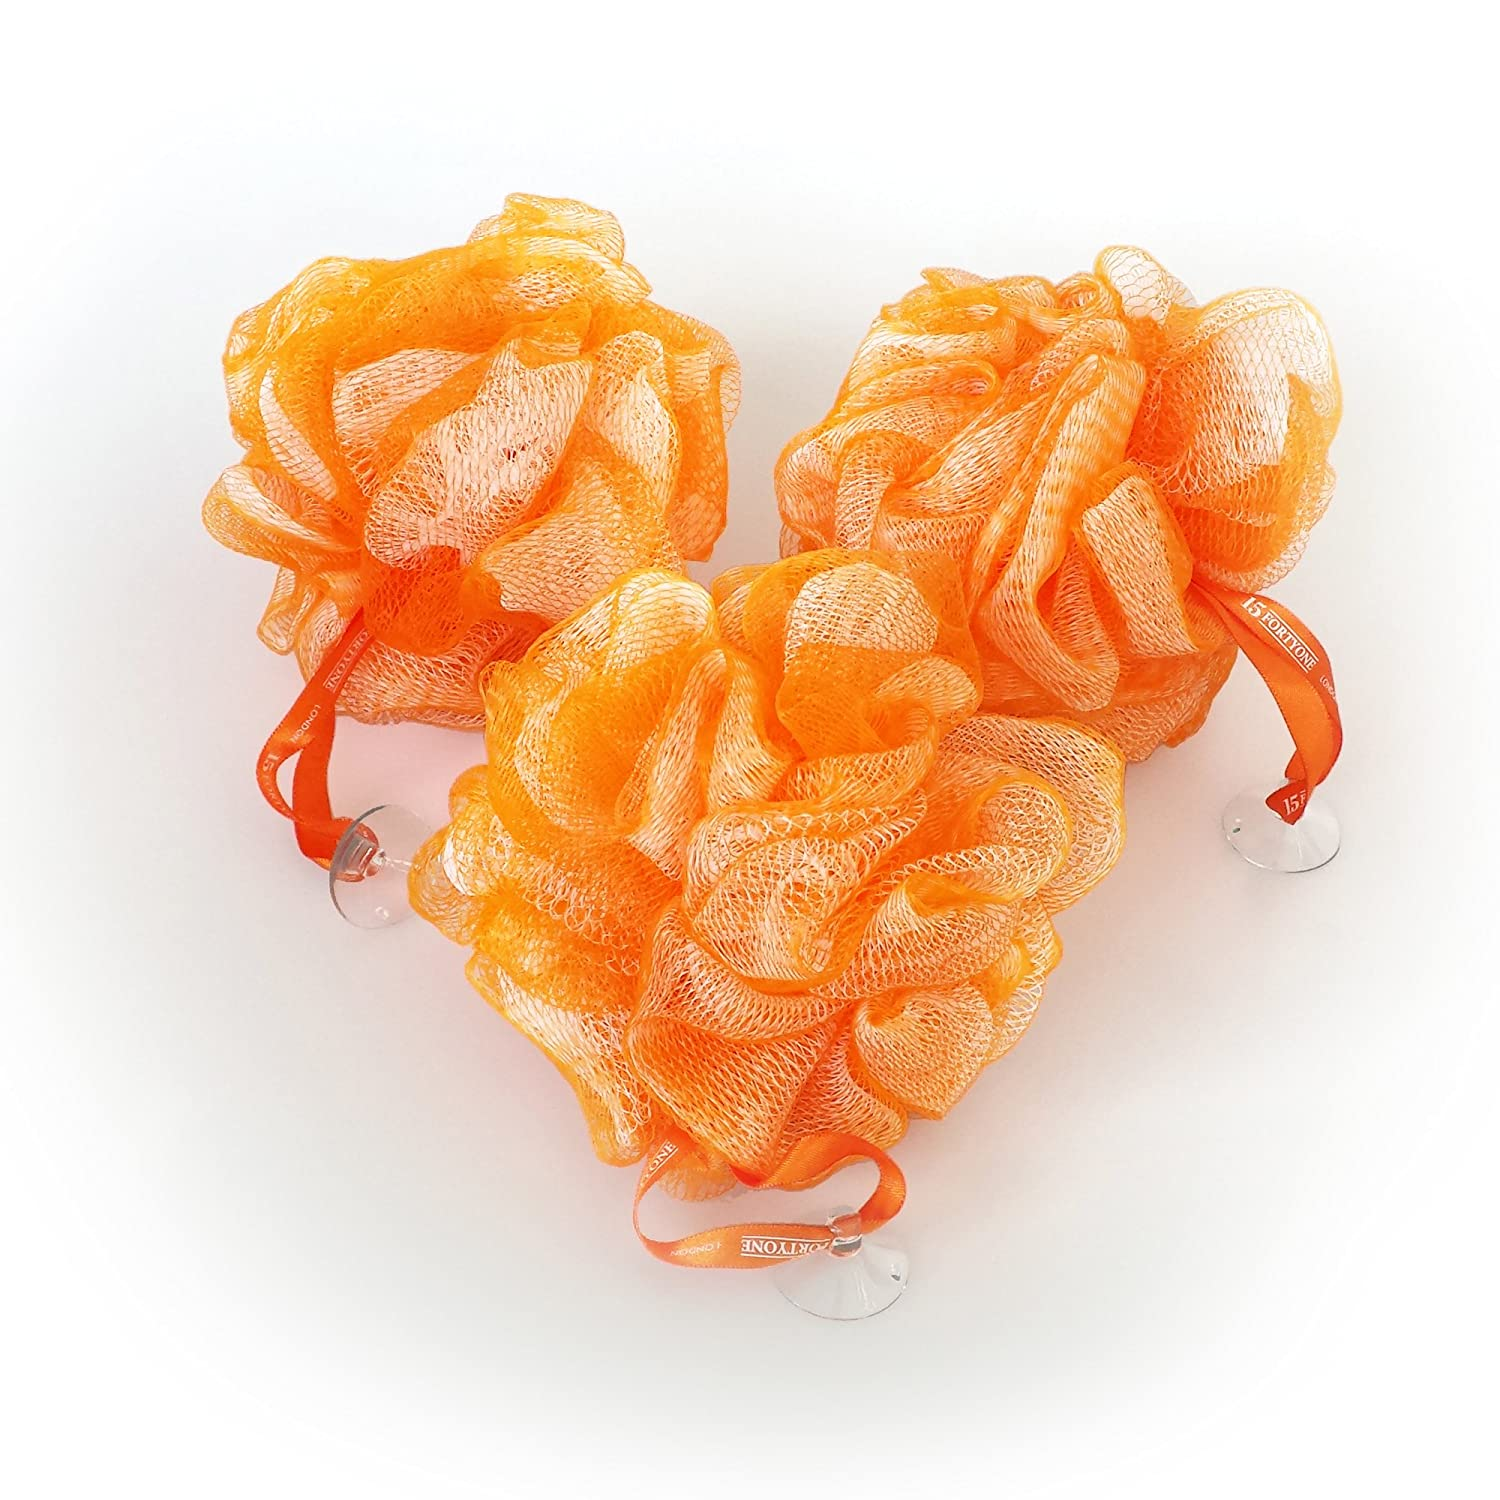 1541 London Exfoliating Bath & Shower Body Puff / Scrunchie / Buffer (Tangerine Orange) 3 pack